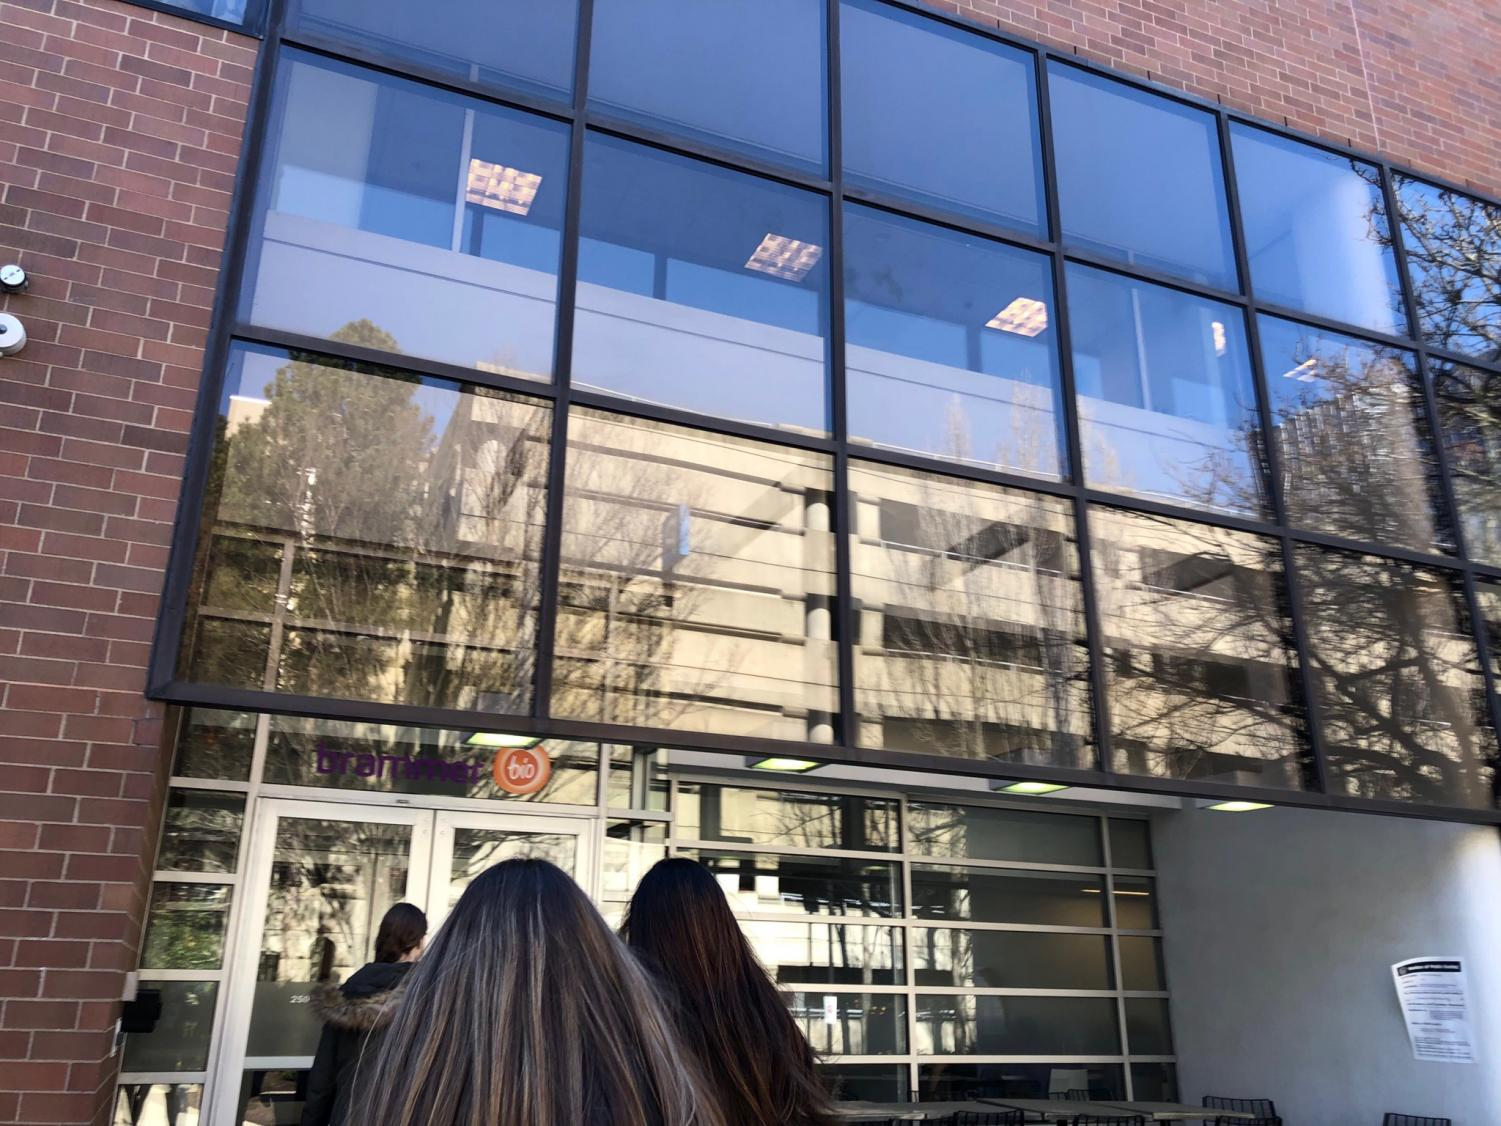 Tritons Biotech class went on a field trip to Brammer Biology in Boston to see what the field of bio technology as to offer